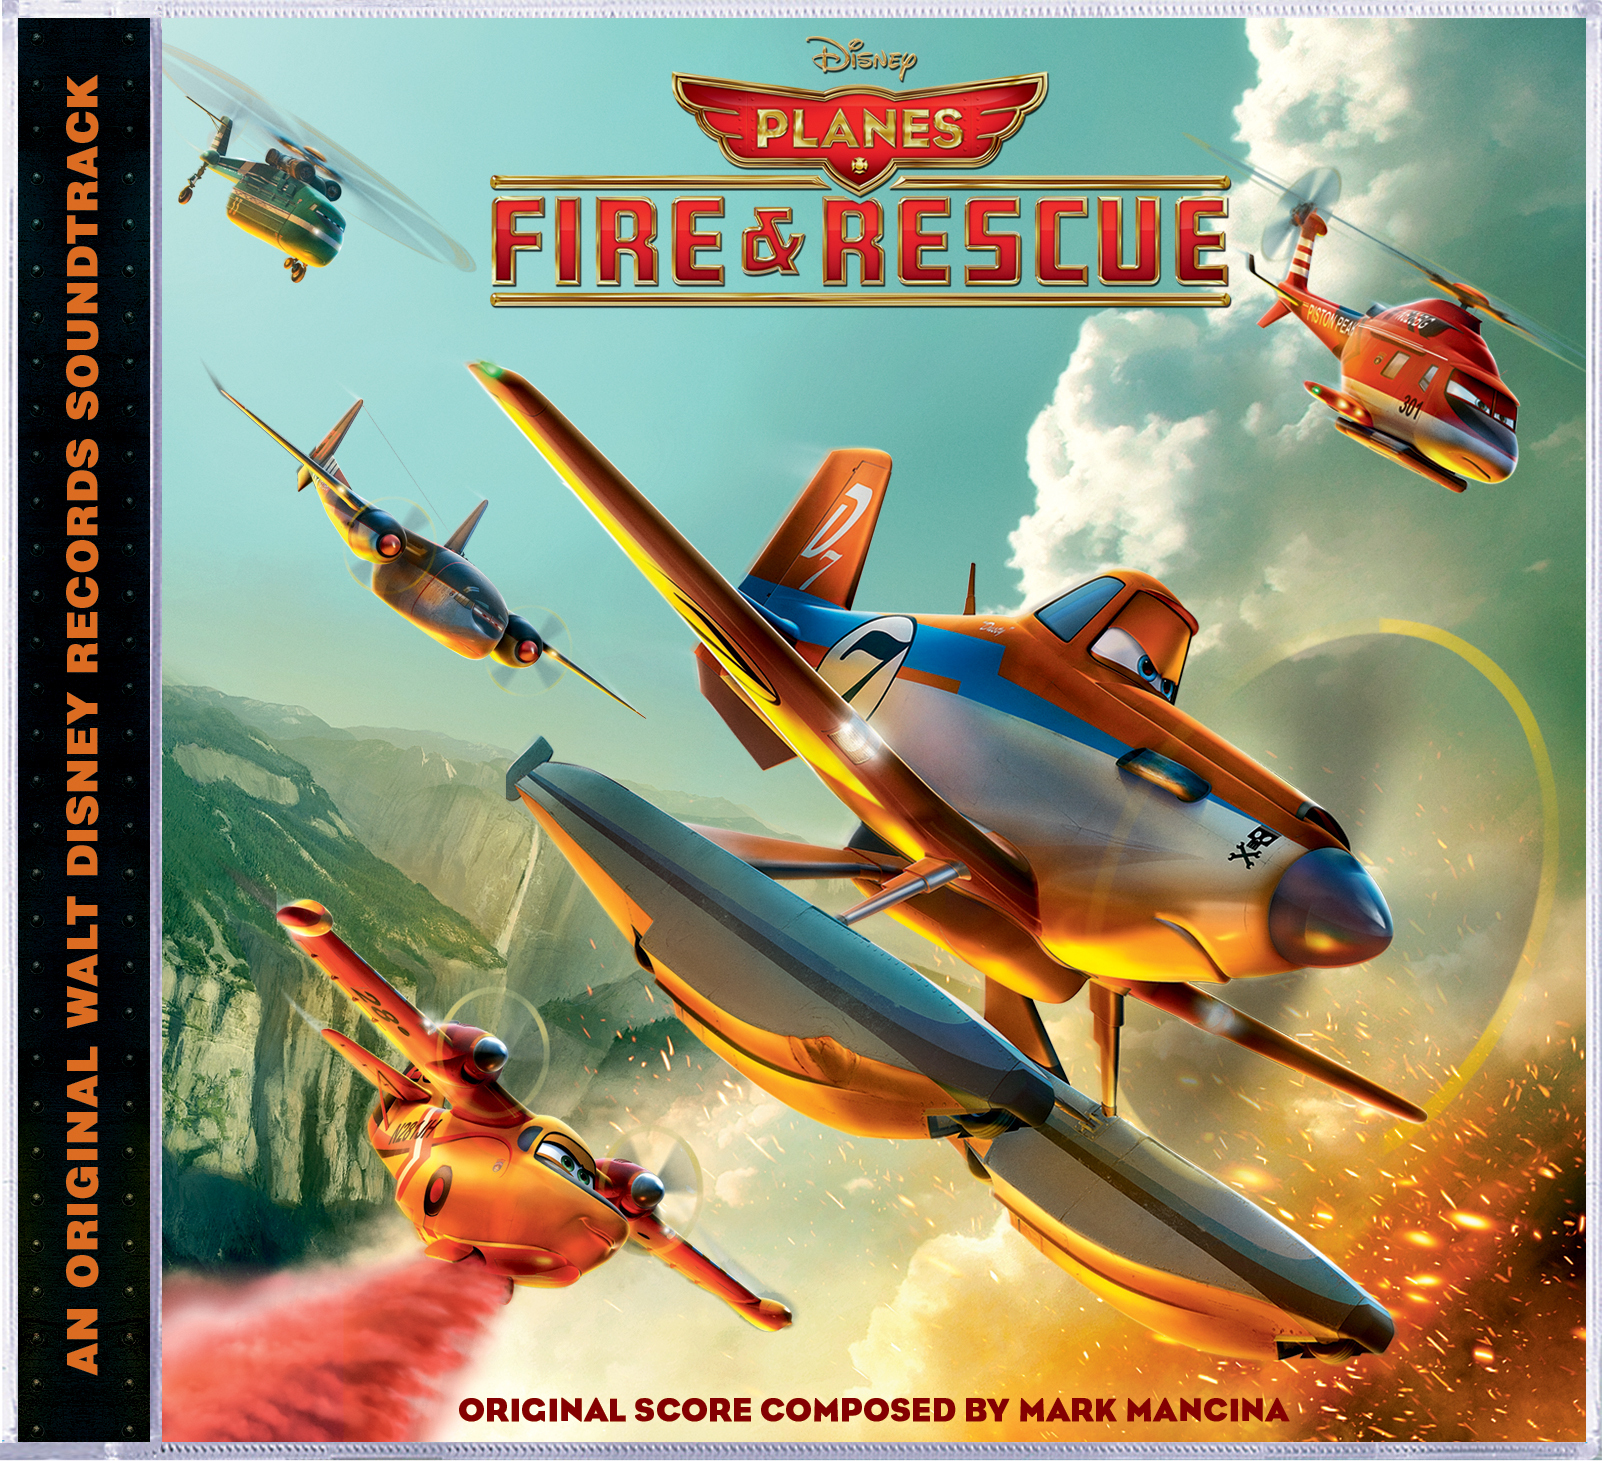 Walt Disney Records to Release PLANES: FIRE & RESCUE Original Motion Picture Soundtrack, 7/15